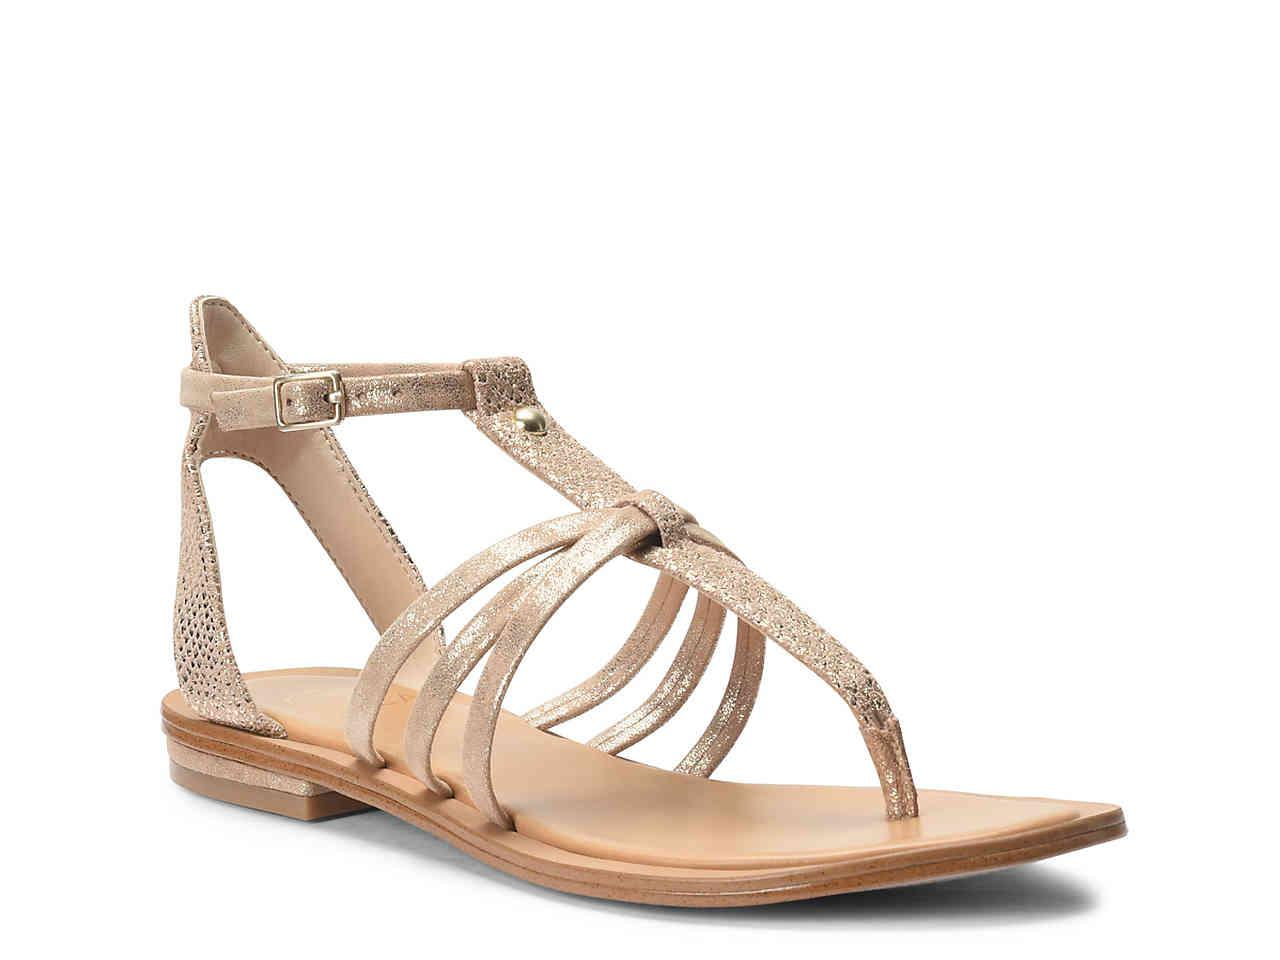 Isola Marica Distressed Foil Suede Sandals VfCpEN